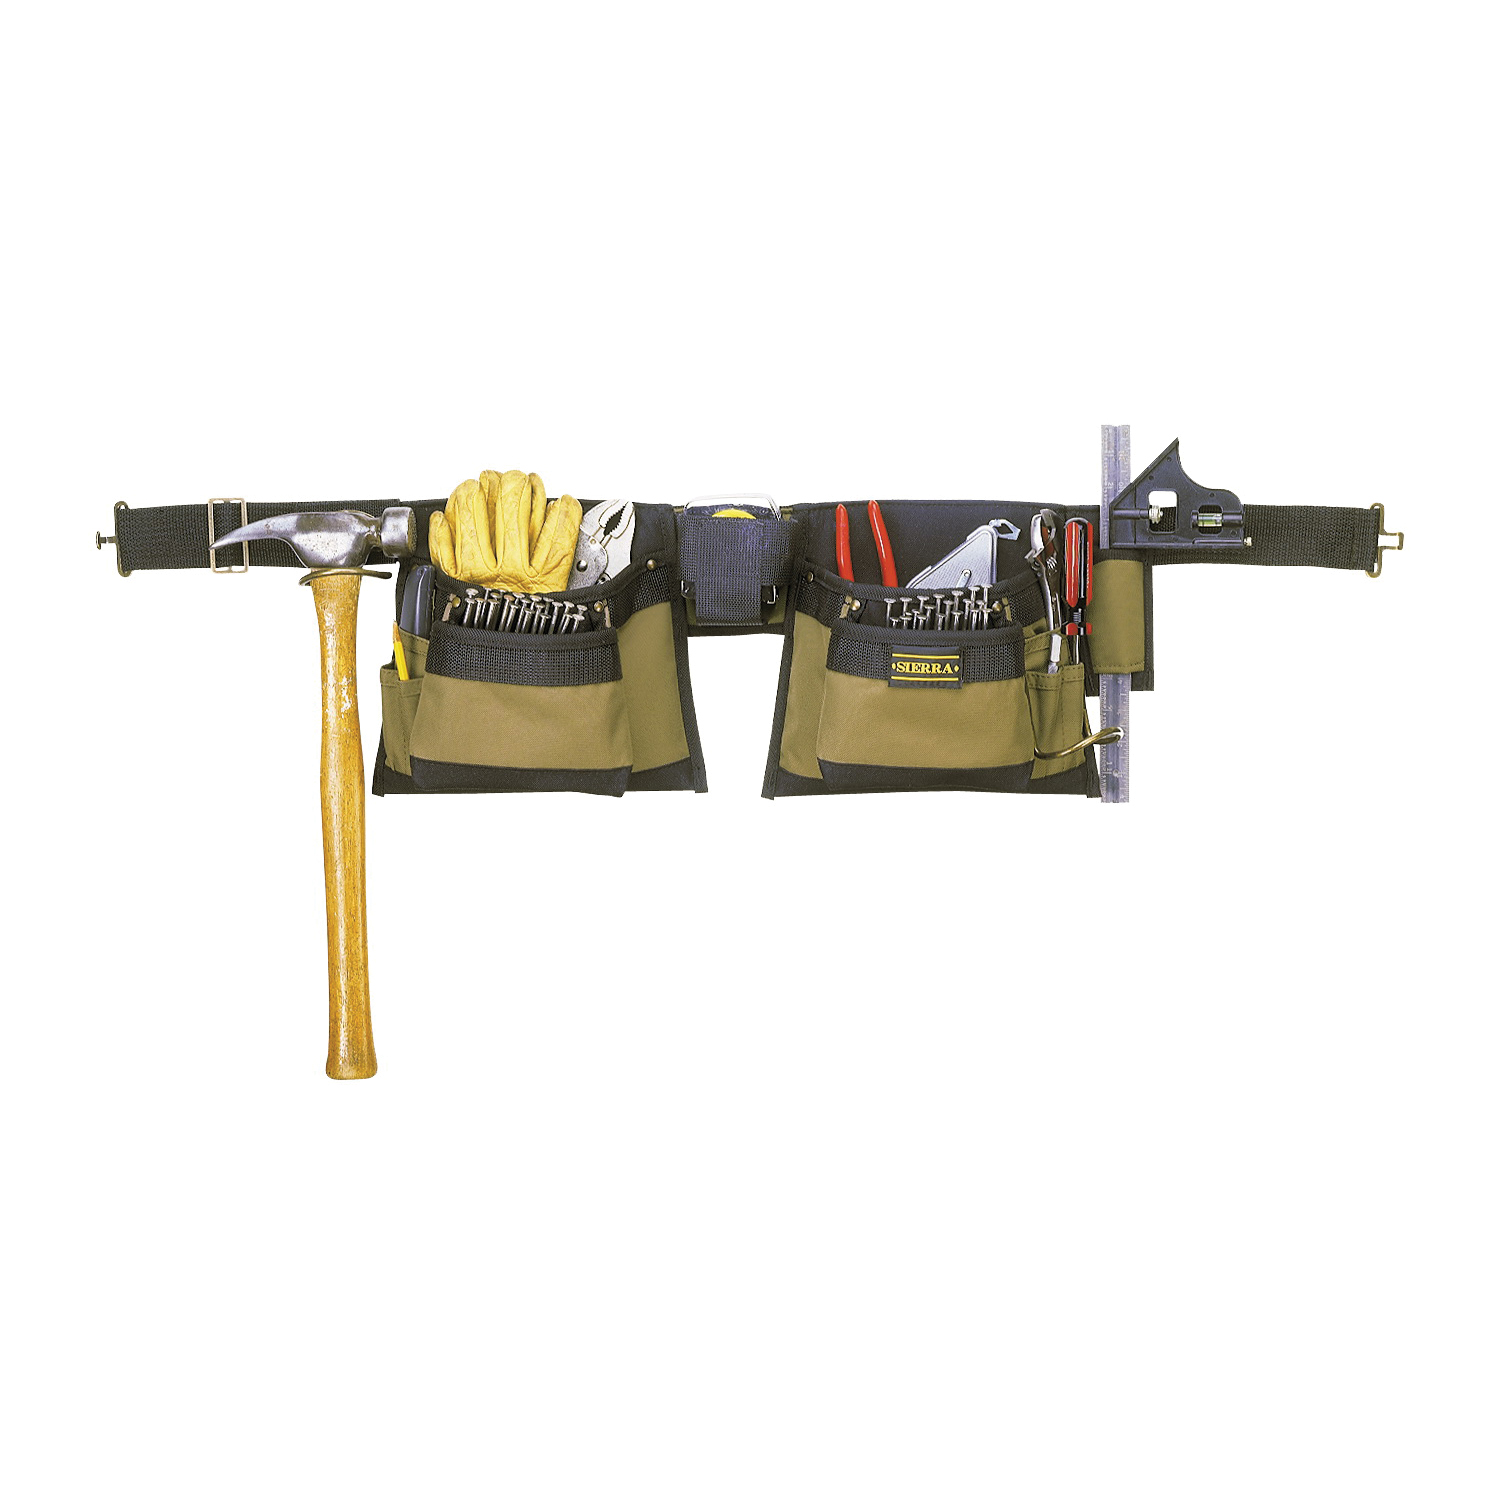 Picture of CLC Tool Works 1429 Tool Apron, 29 to 46 in Waist, Polyester, Brown, 12 -Pocket